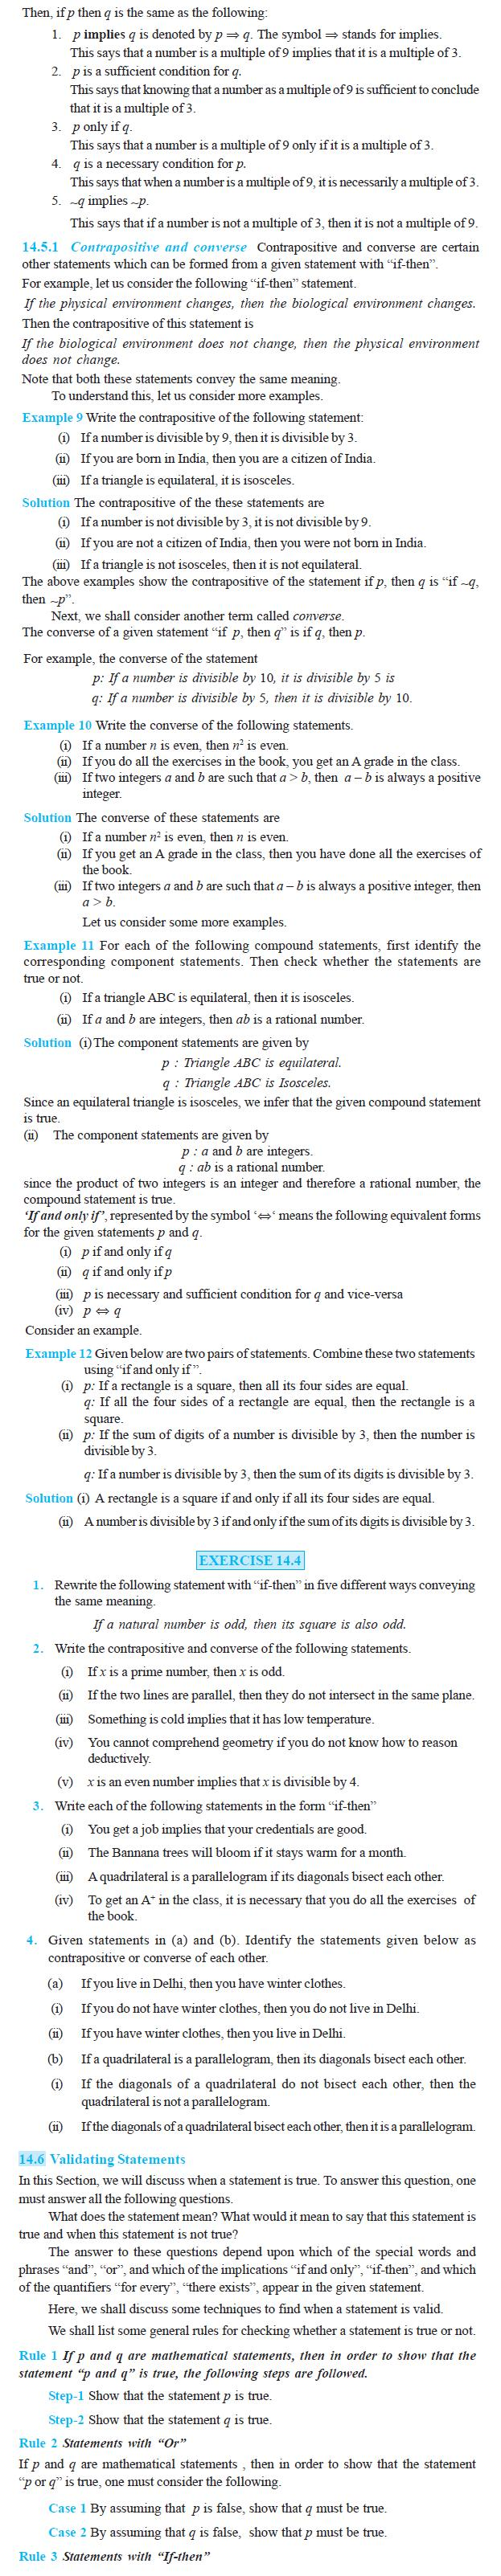 NCERT Class XI Mathematics Chapter 14 – Mathematical Reasoning